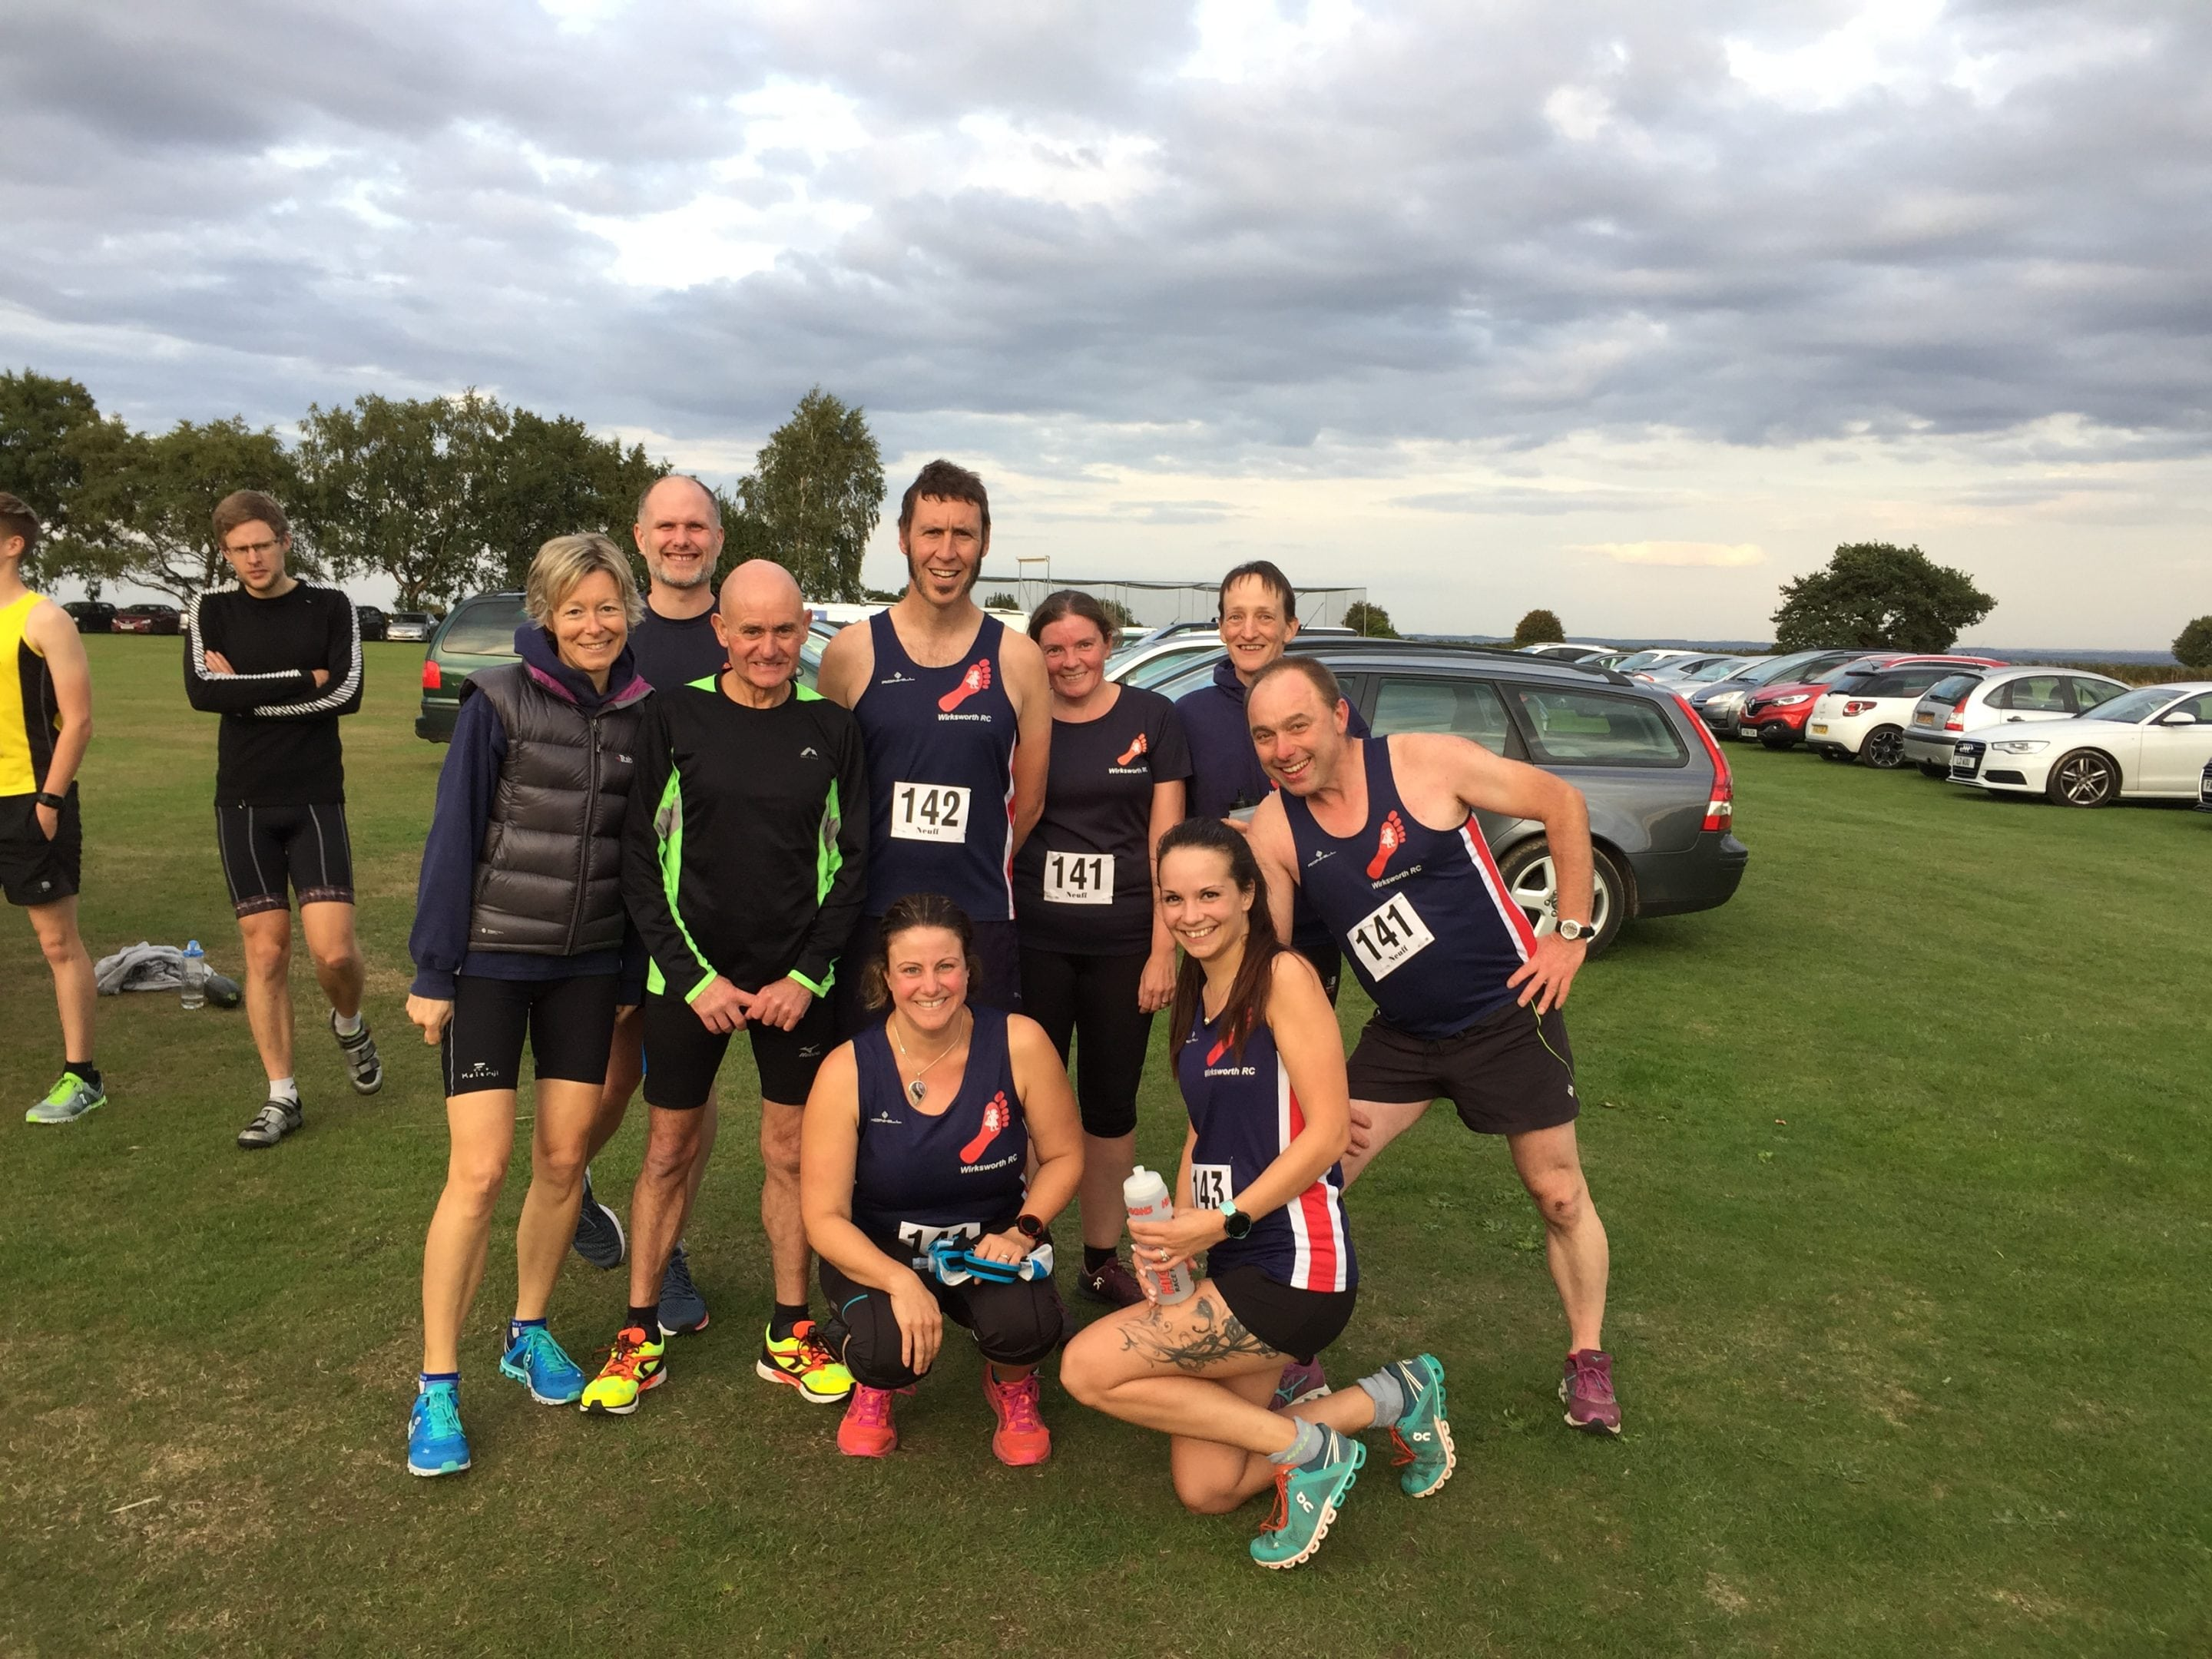 Alport Heights relays 30 August 2018